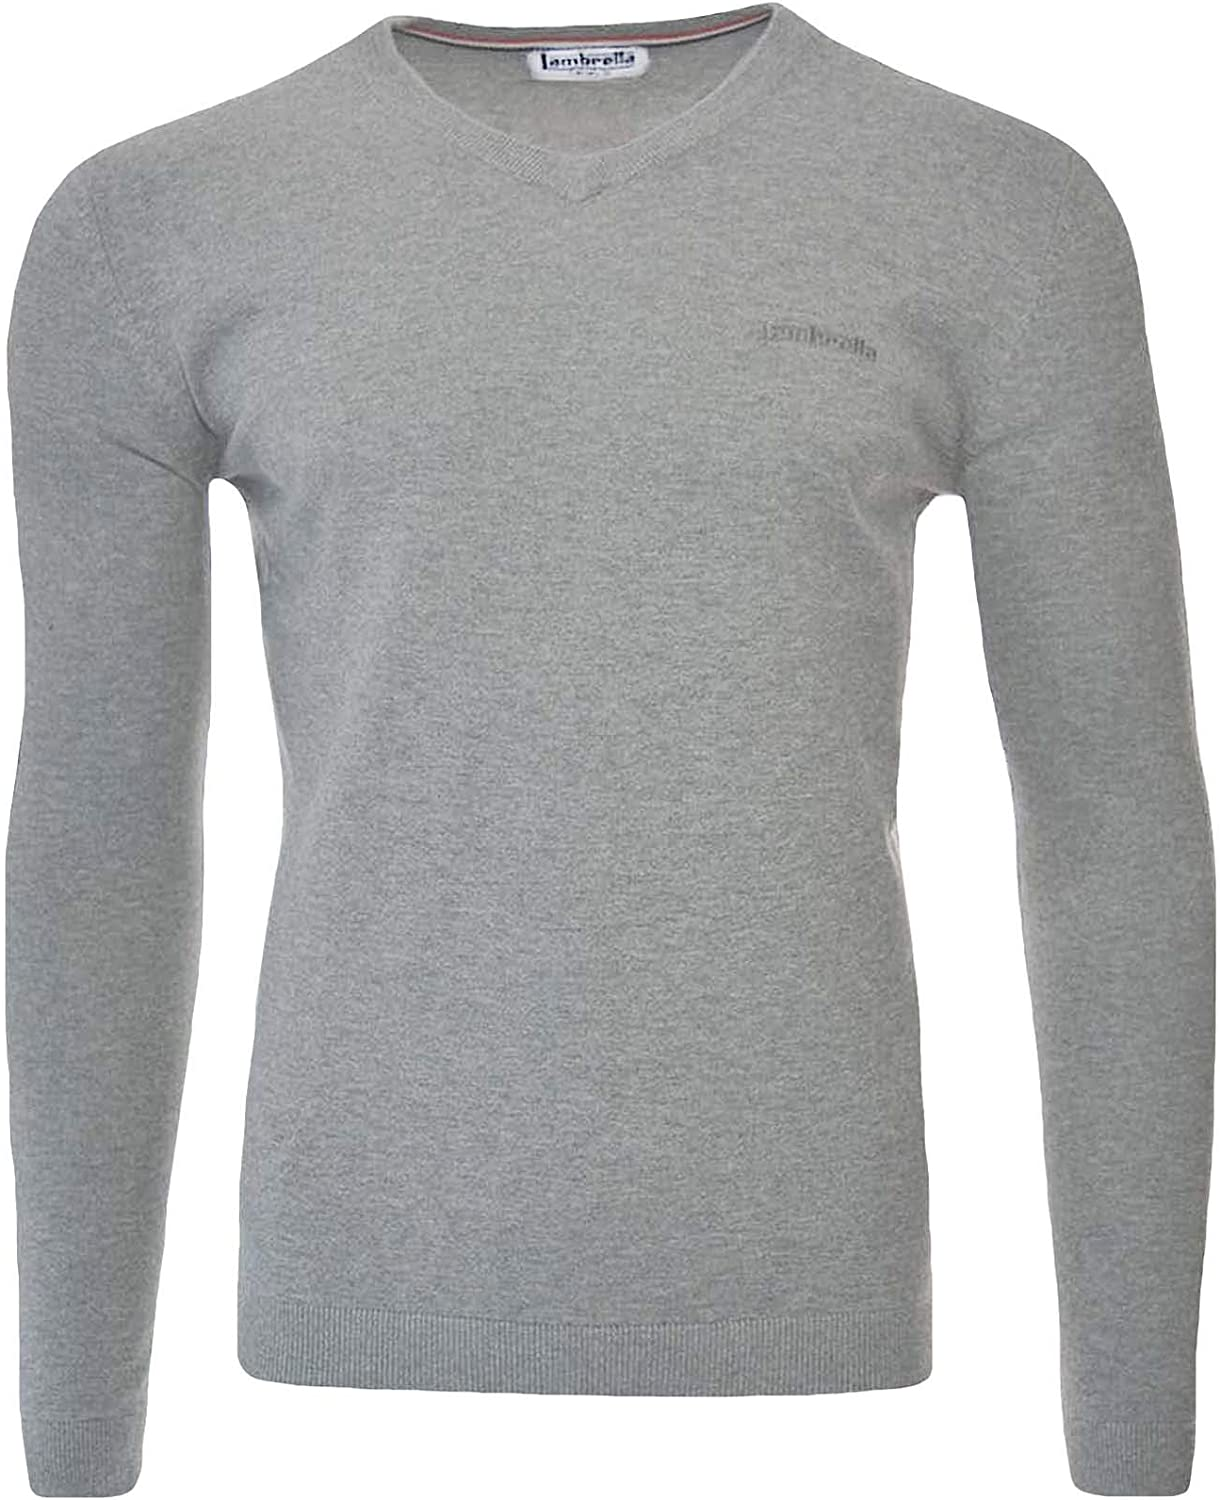 Lambretta Mens V Neck Casual Cotton Knit Knitted Jumper Top